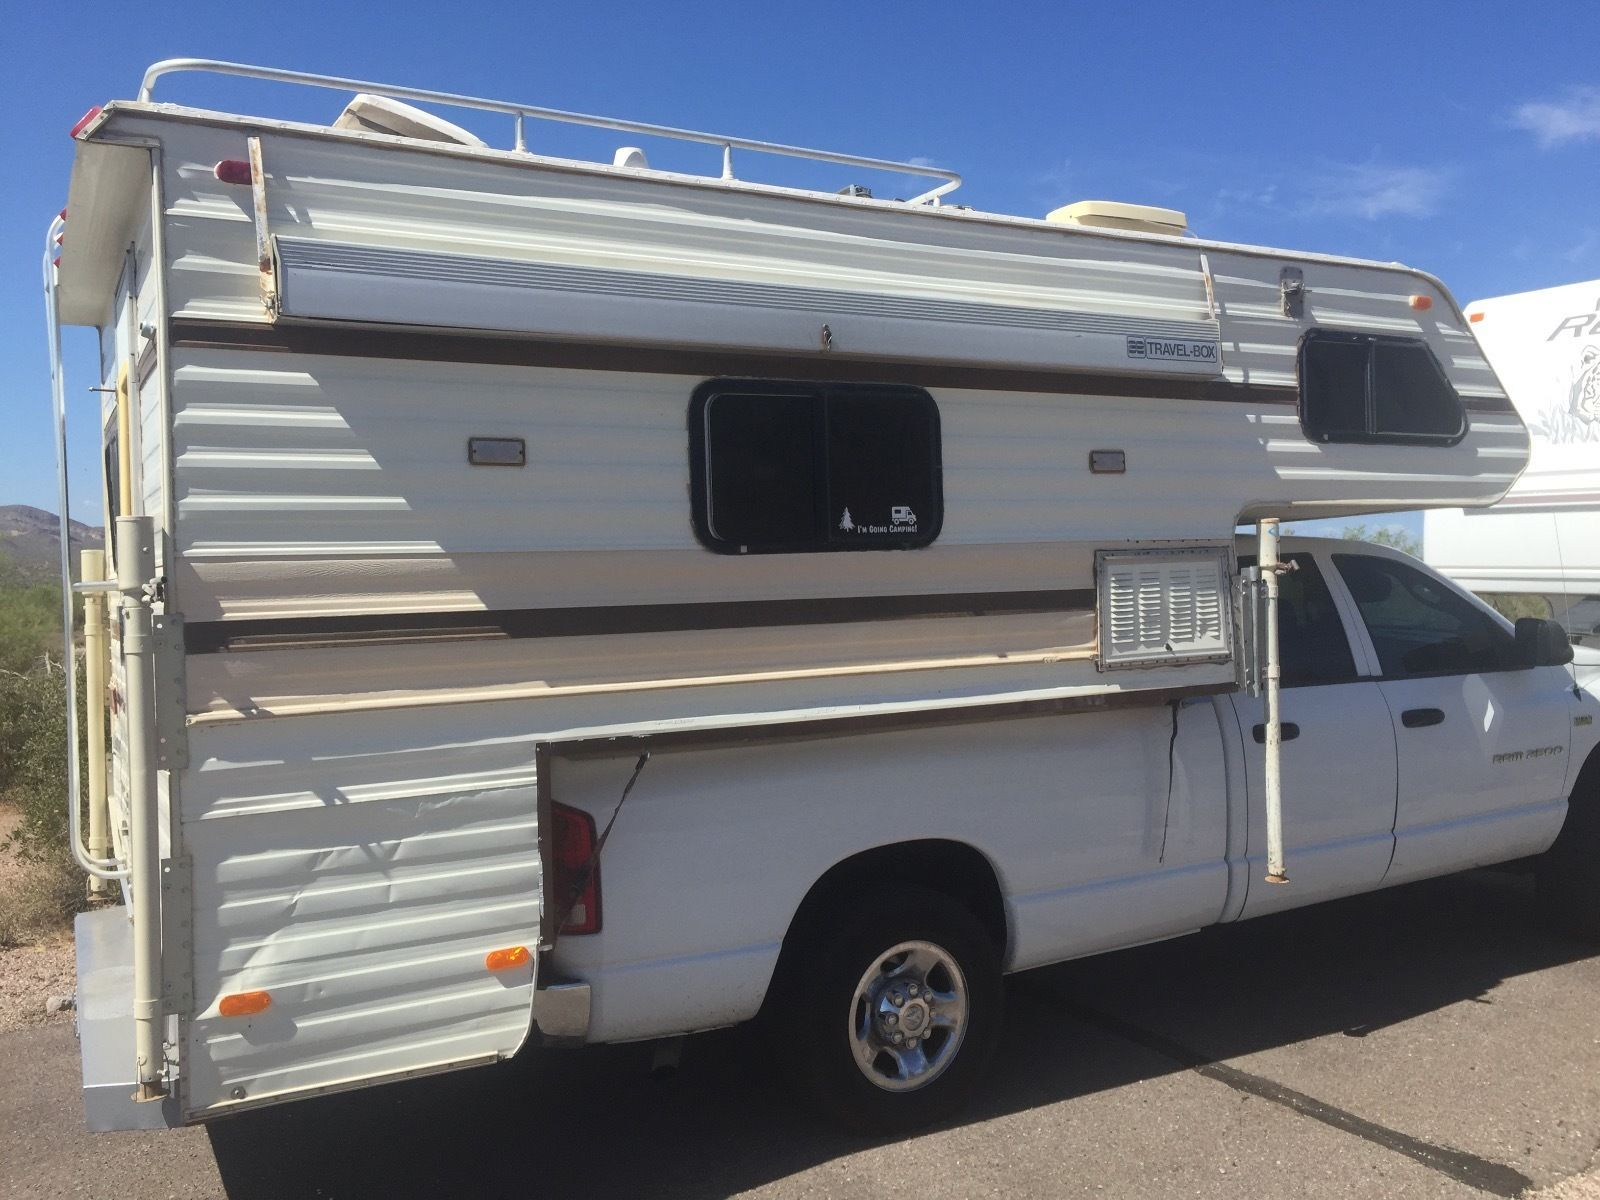 1981 Lance Slide in Truck Camper (With images) Slide in